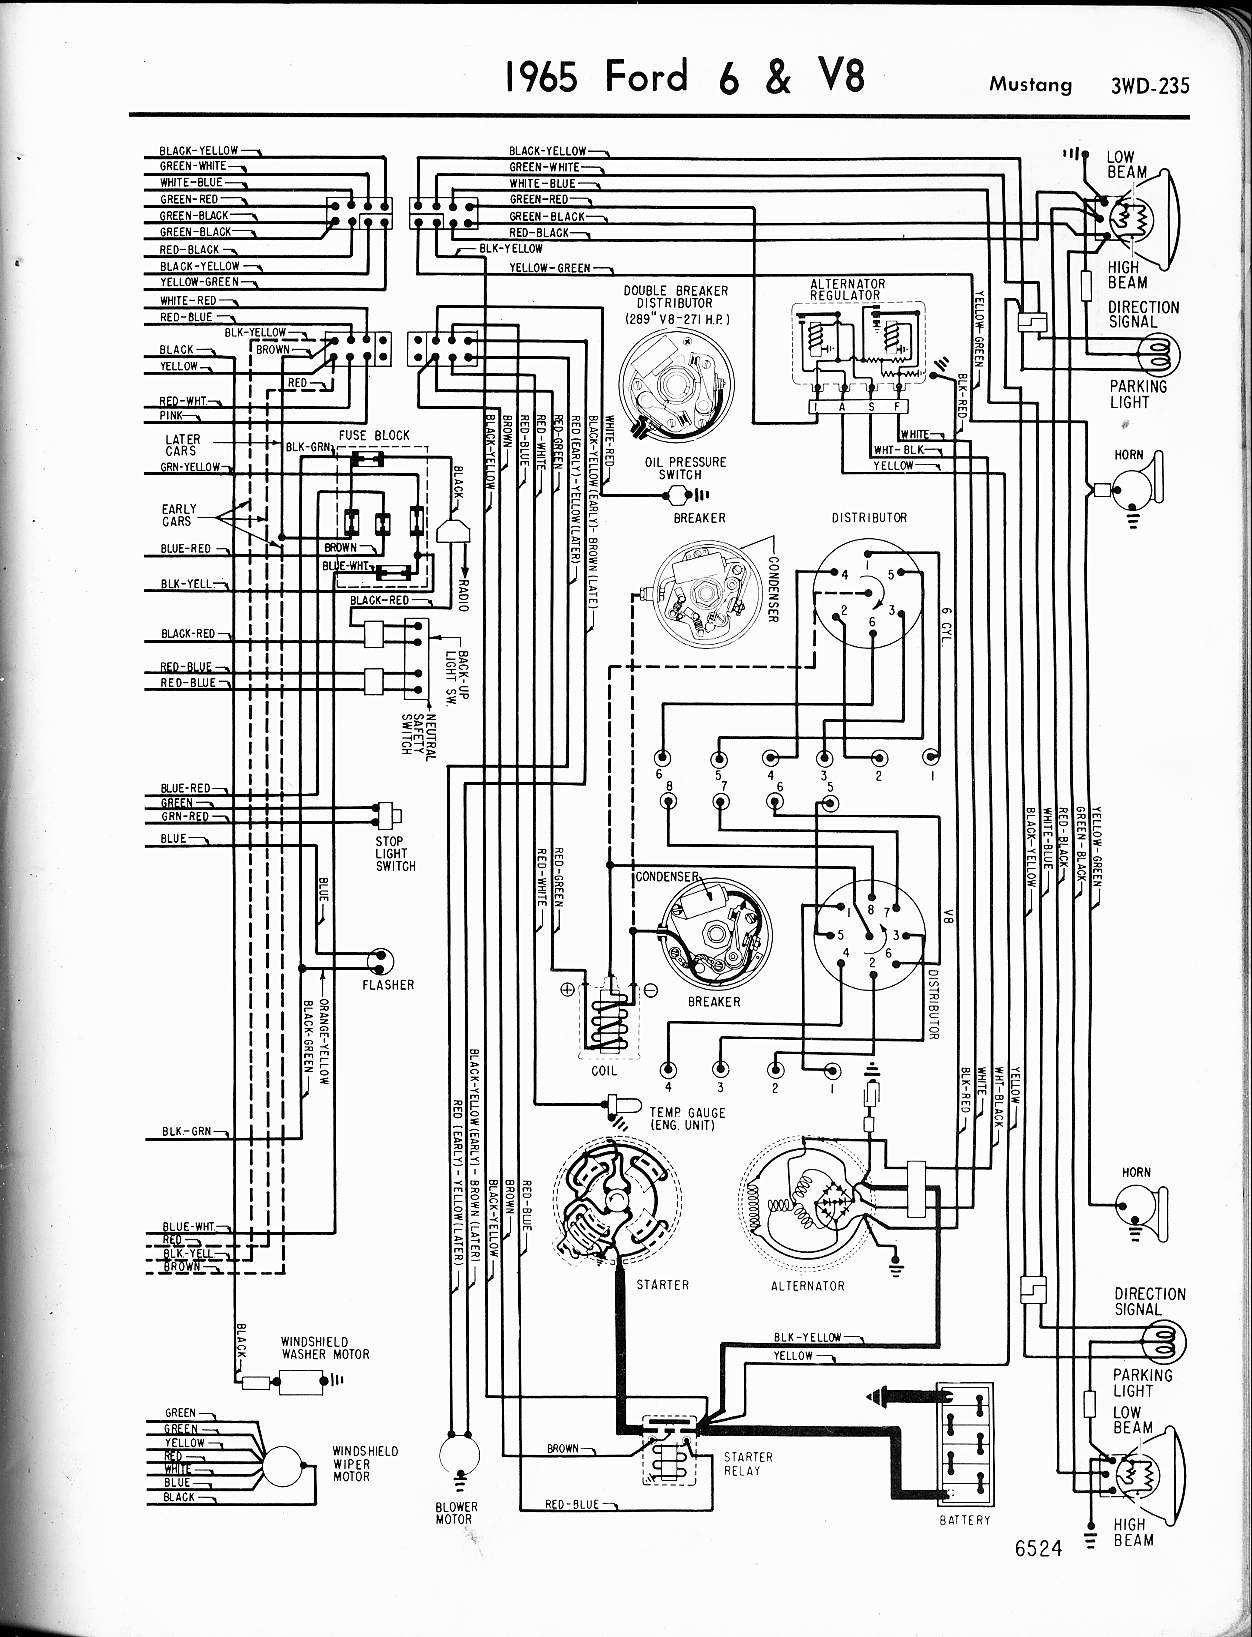 1965_mustang_wiring_2 ford diagrams old ford wiring harness at gsmportal.co